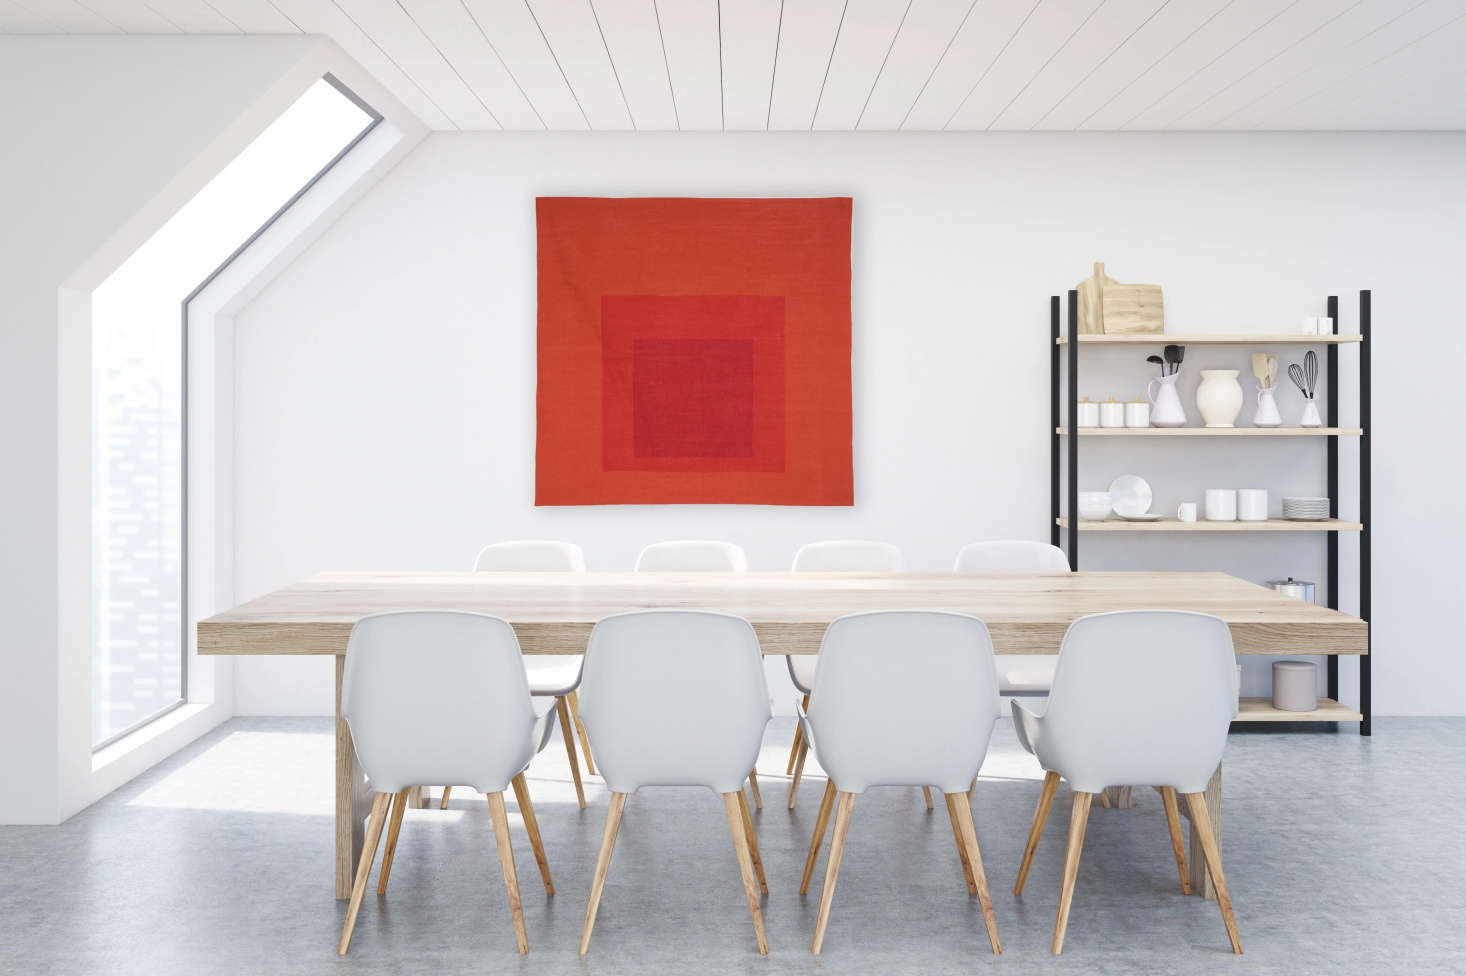 Artware offers made-to-order Homage to the Square wool tapestries in limited editions of . These are licensed by the Albers Foundation and directly modeled after Albers paintings. Five designs are available for $9,600 each.